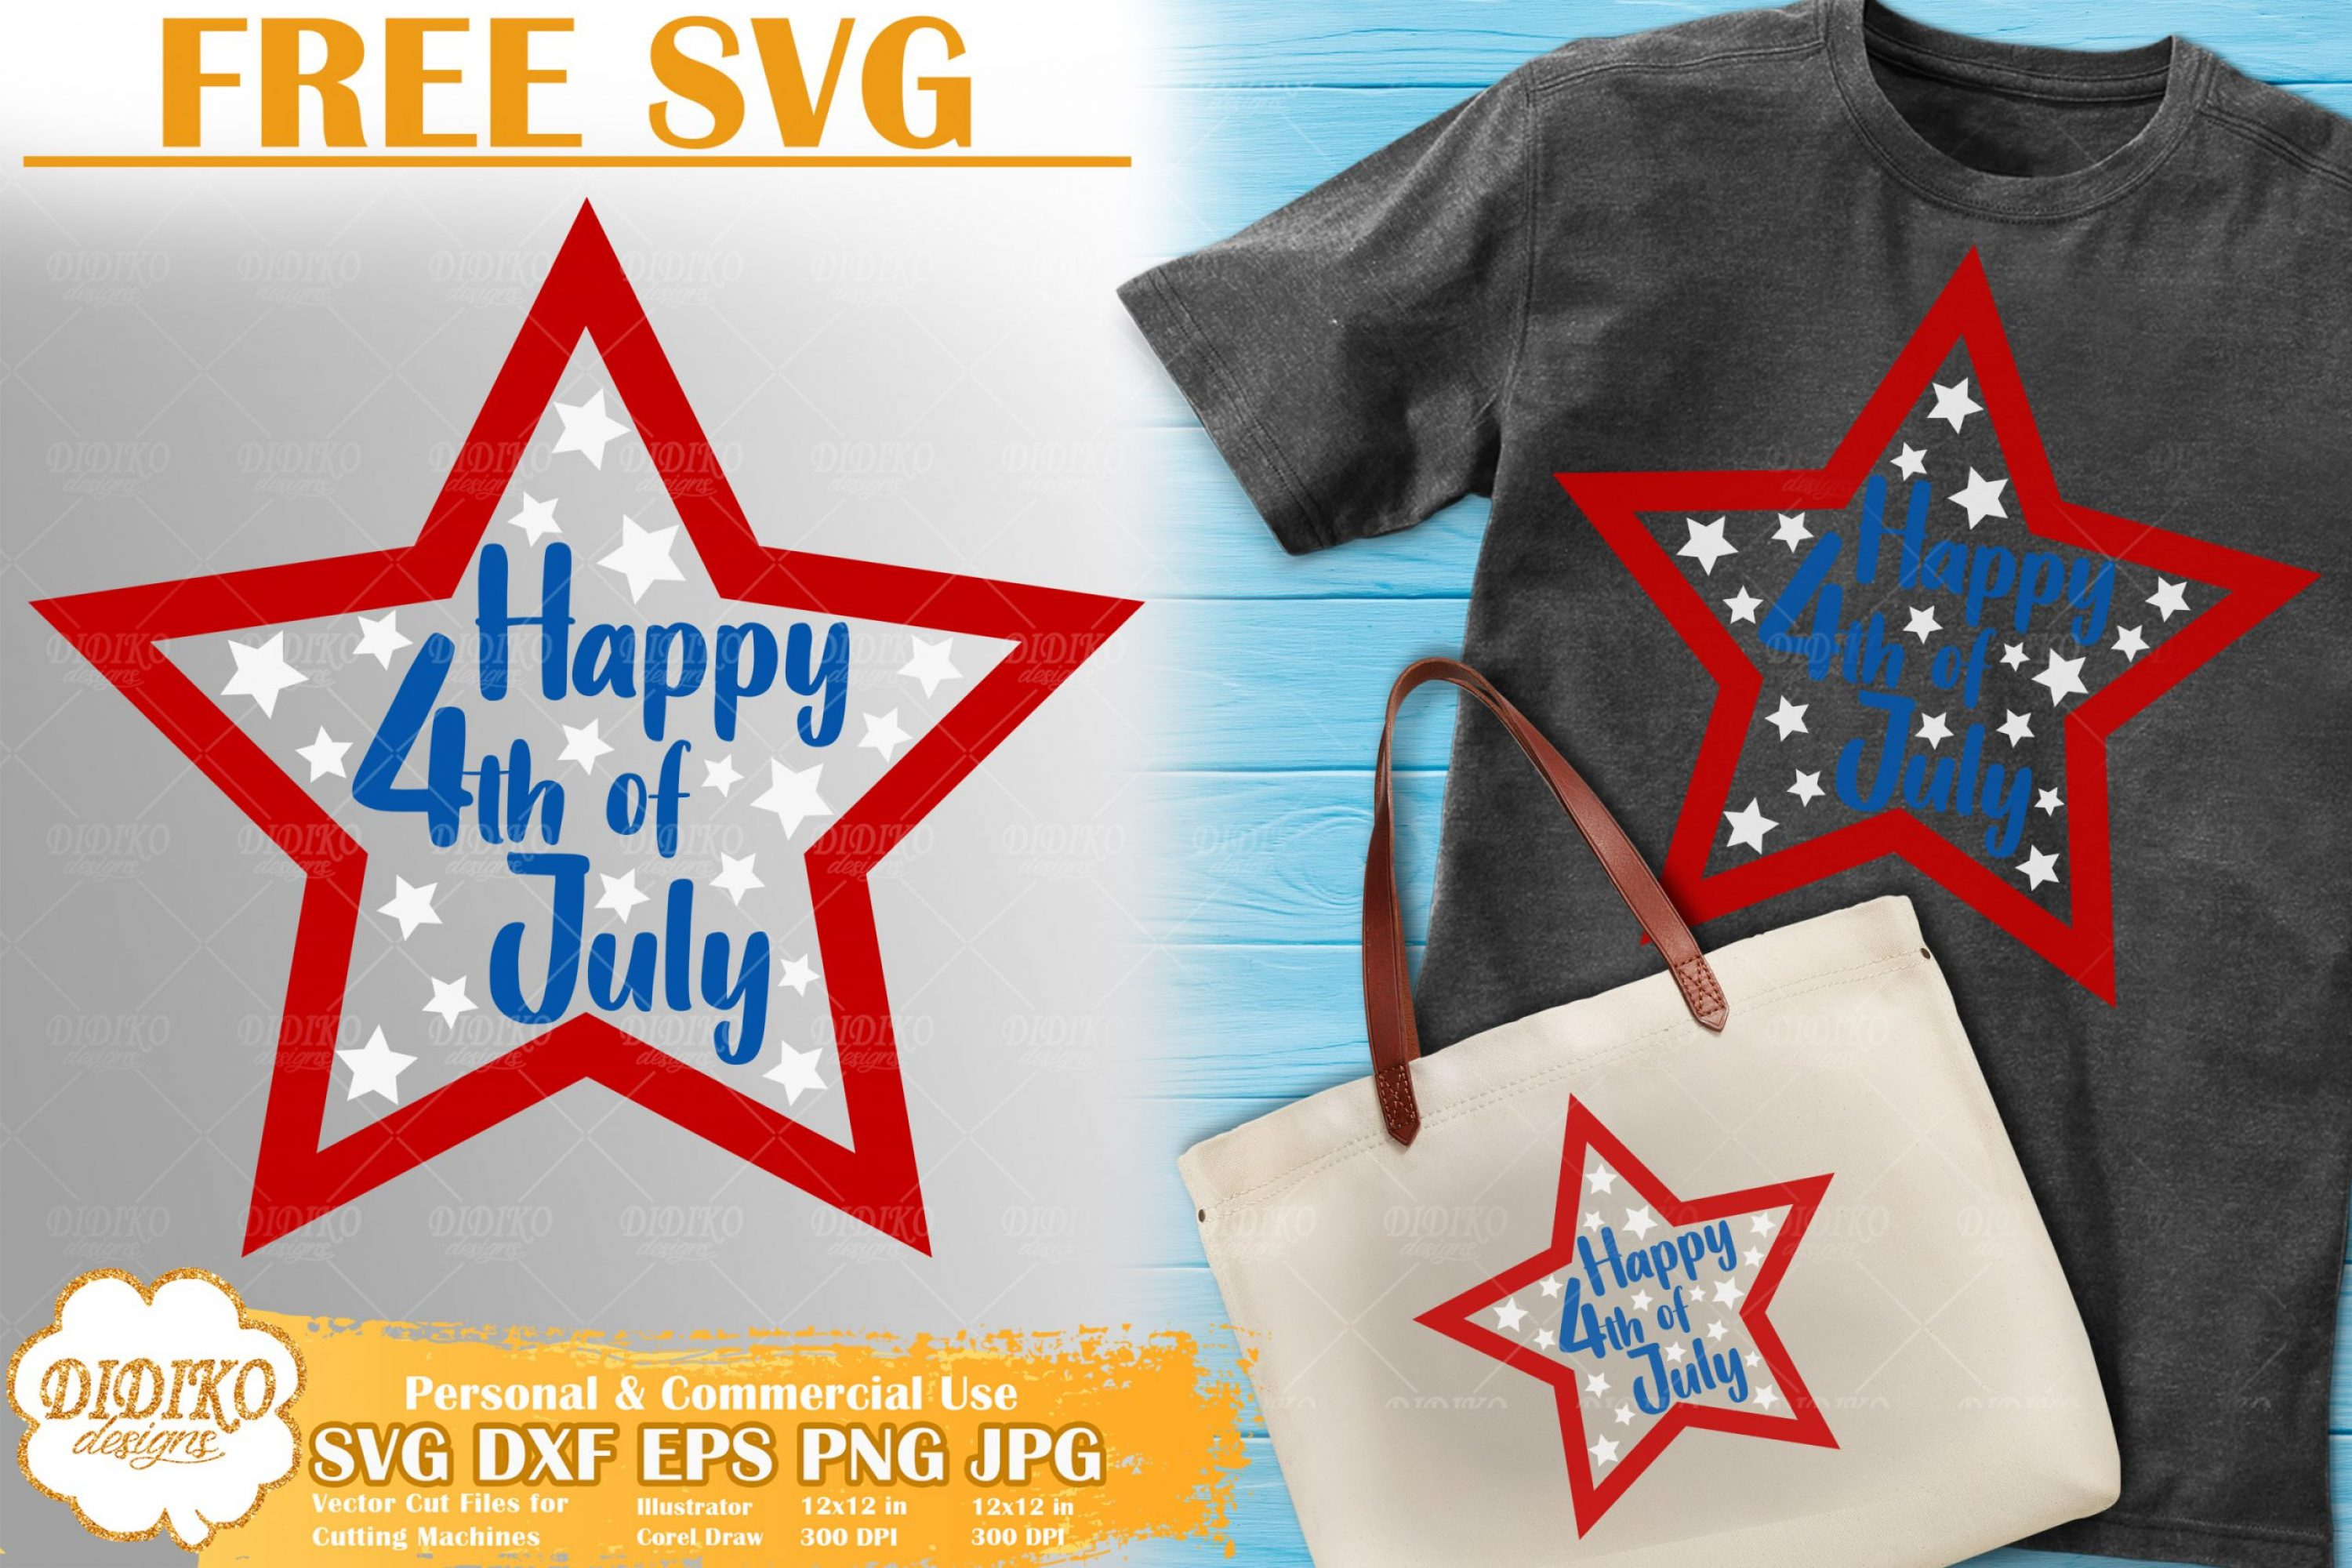 Free Happy 4th of July SVG | Free SVG Cut file for cricut